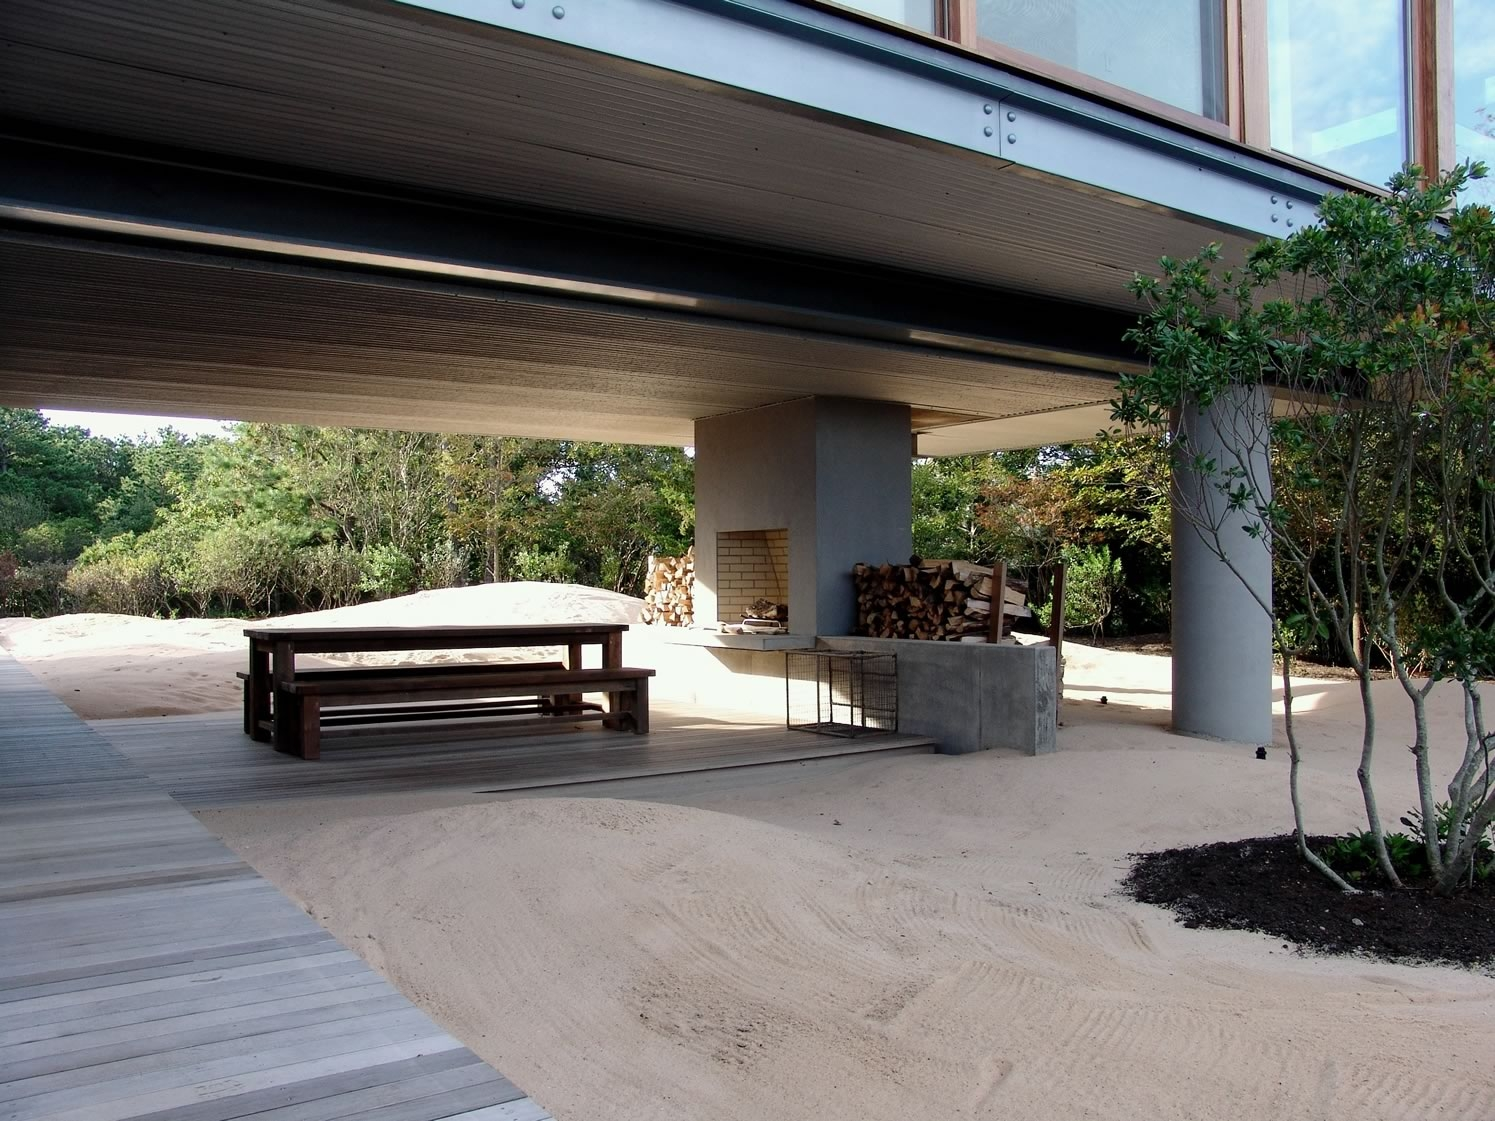 Amagansett, NY Modern Bay Residence Outdoor Fireplace and Dining Area